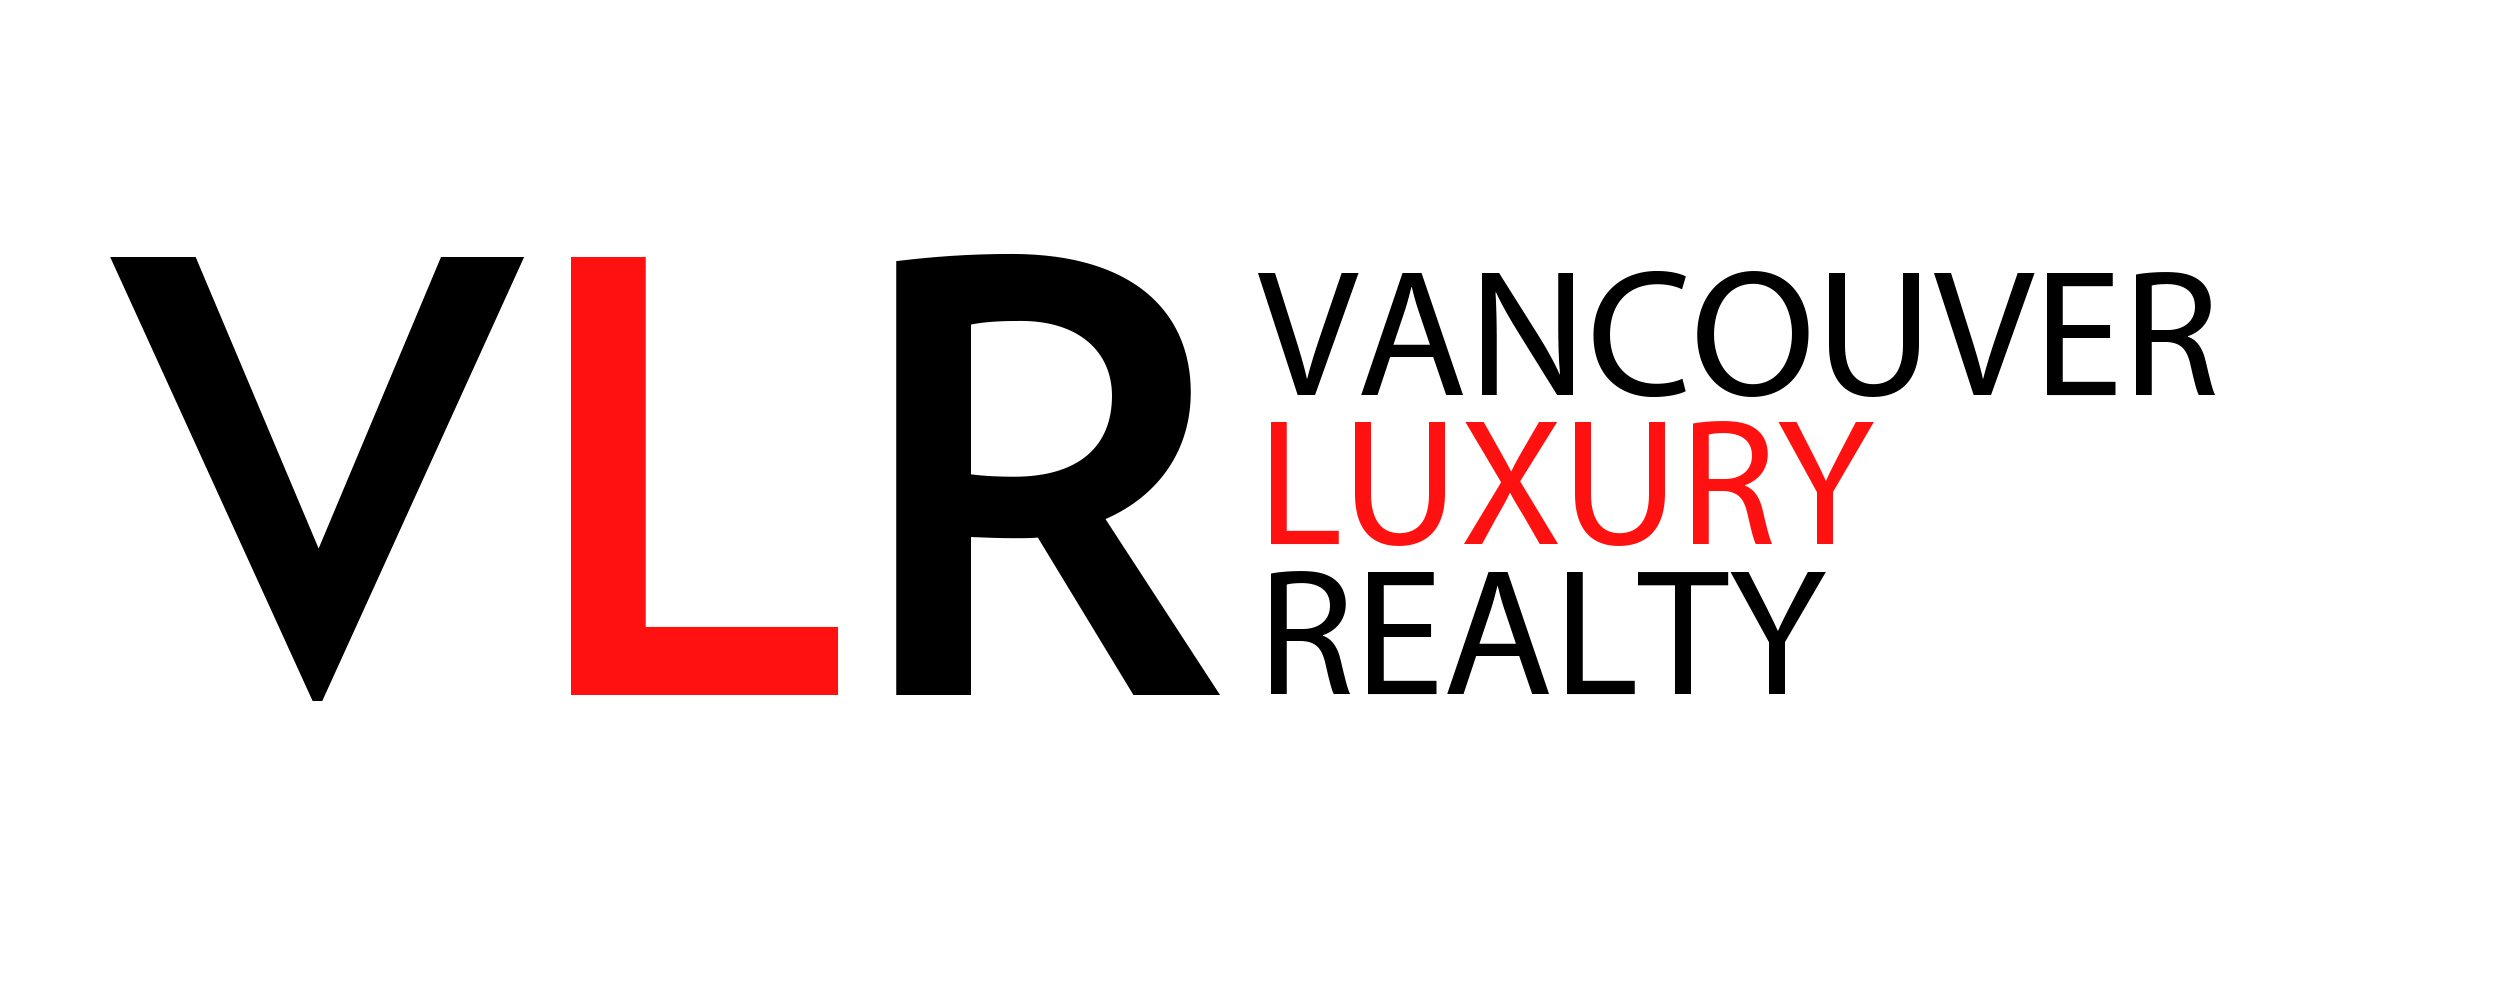 The Property Management Group Vancouver